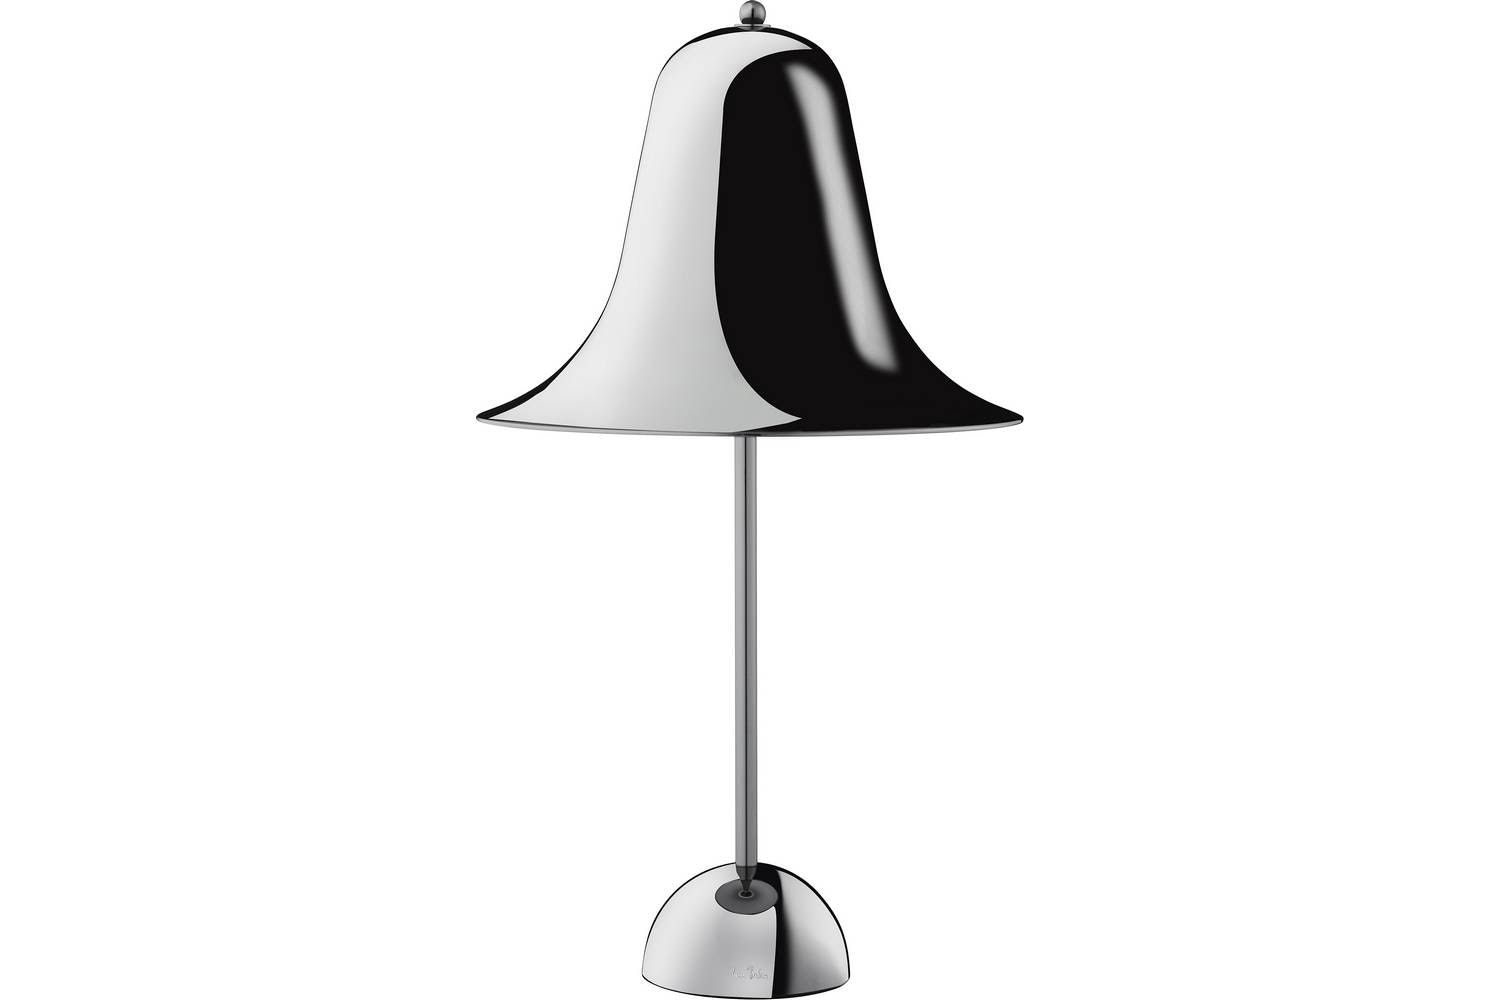 Pantop Table Lamp in Black Chrome by Verner Panton for Verpan